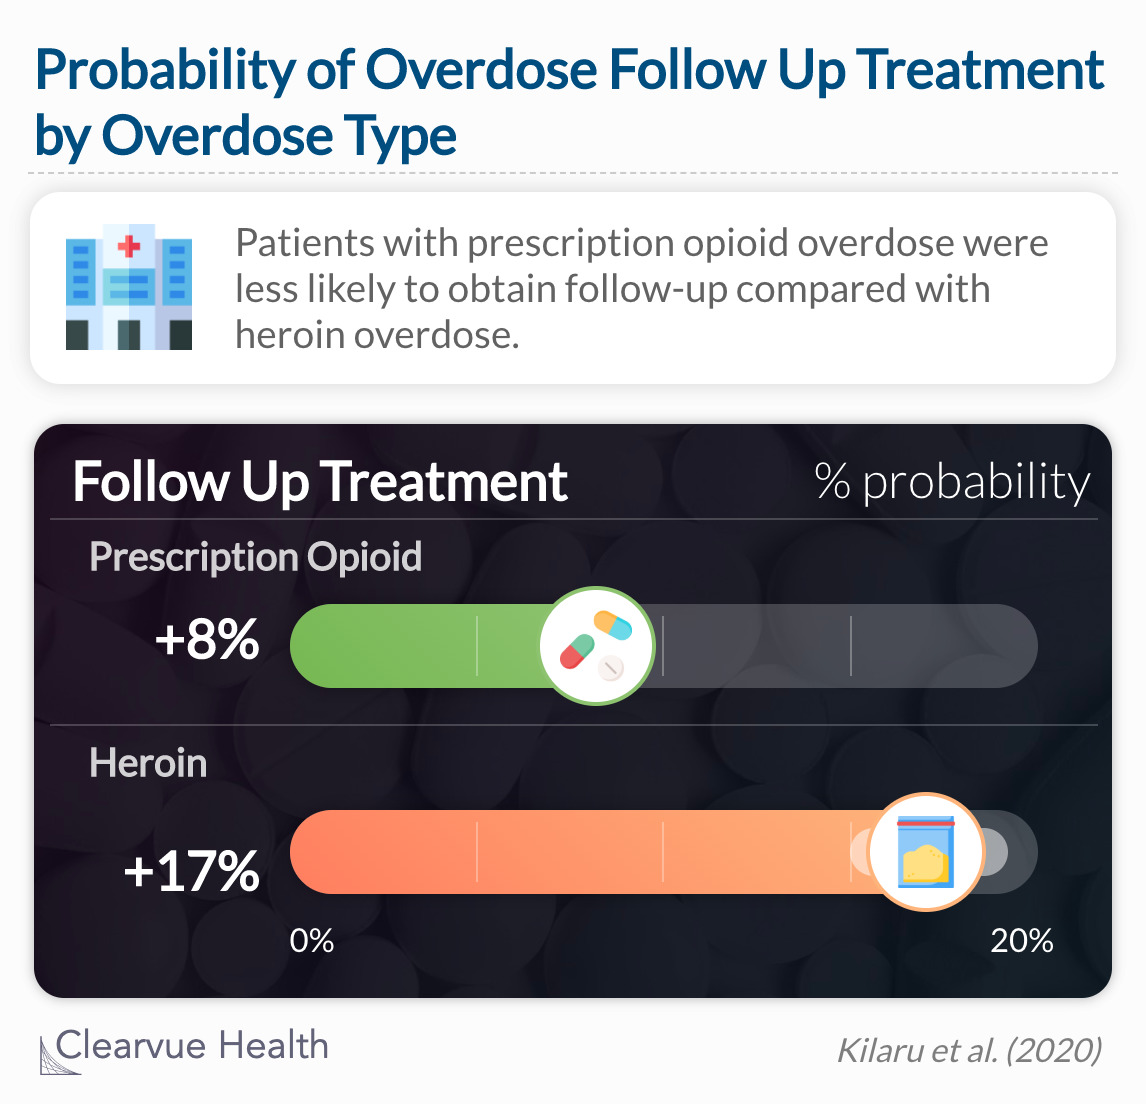 Patients with prescription opioid overdose were less likely to obtain follow-up compared with a heroin overdose.